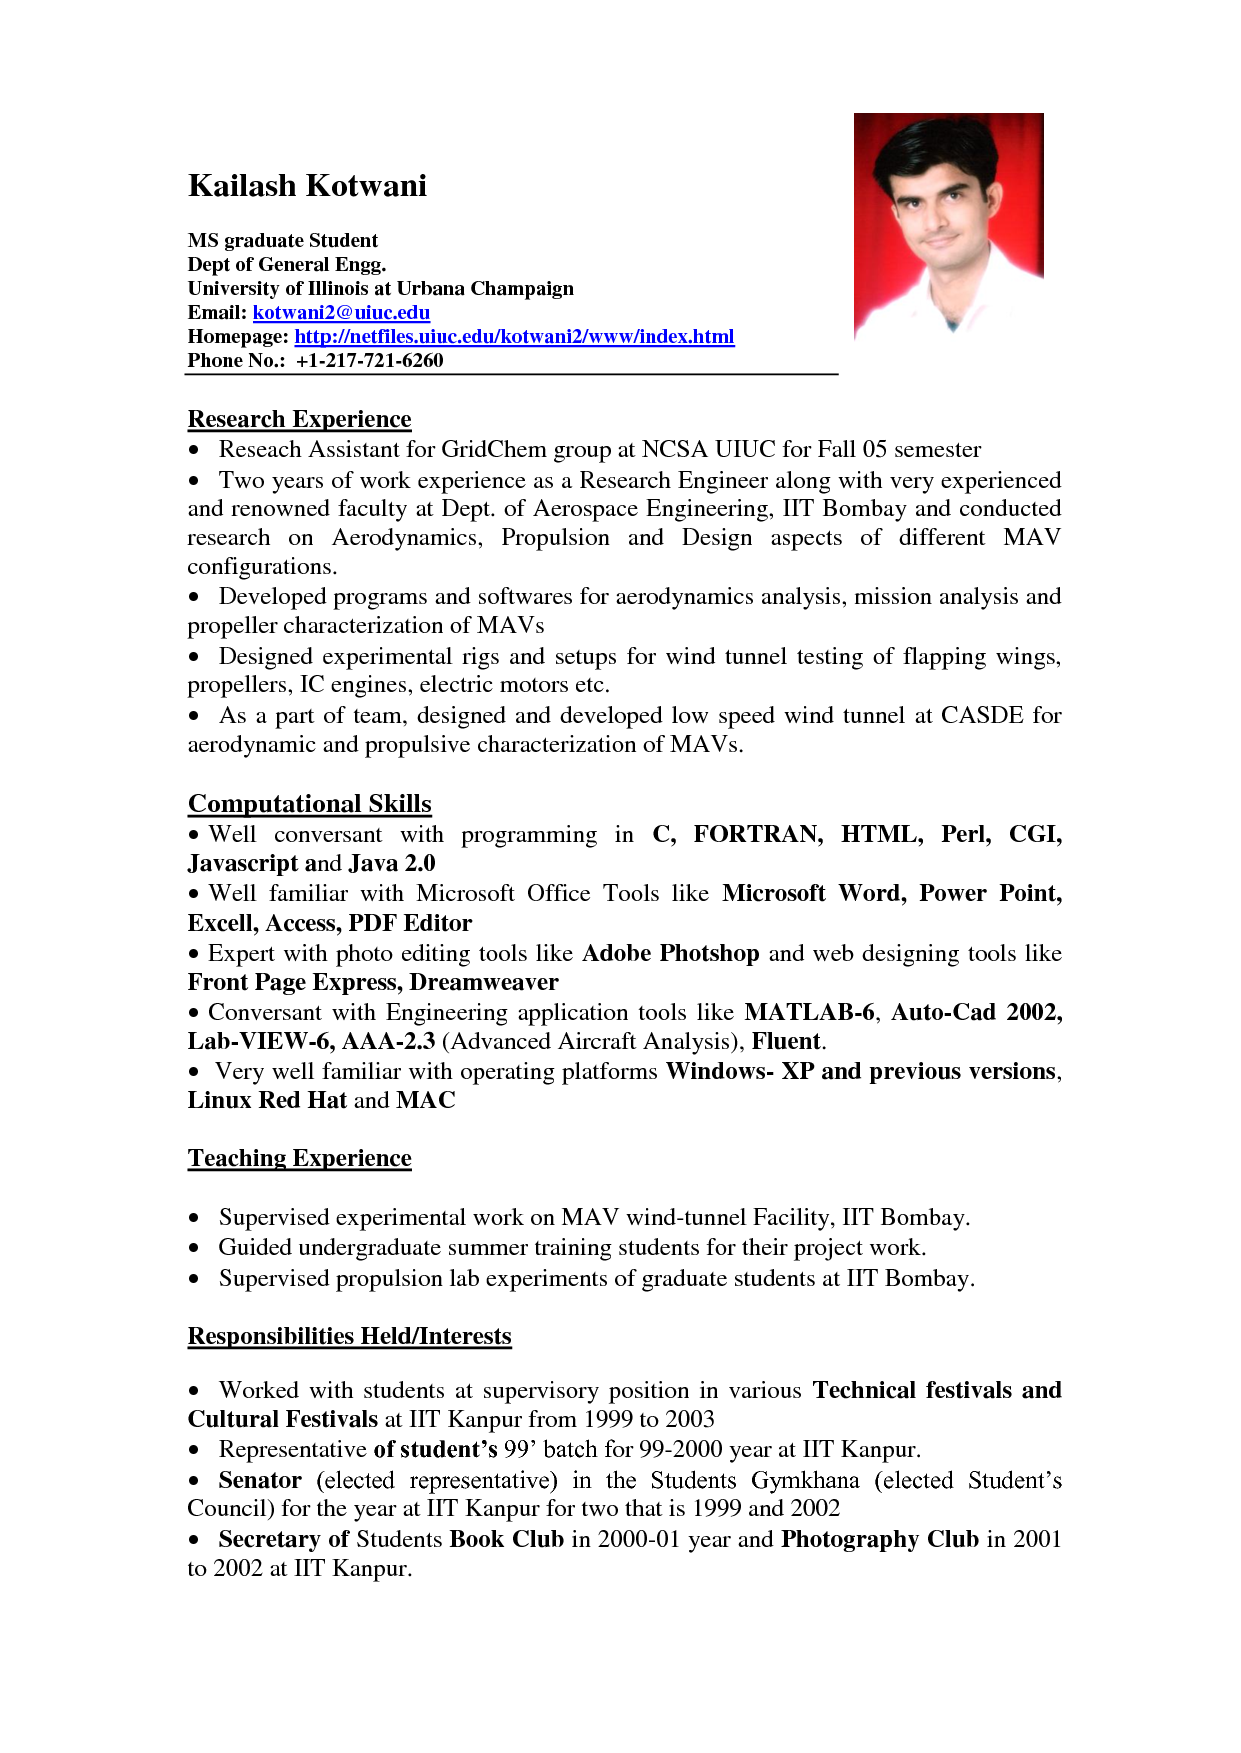 high school student resume examples no work experience no work experience resume content how to write a resume resume - Resume Examples For University Students With No Work Experience